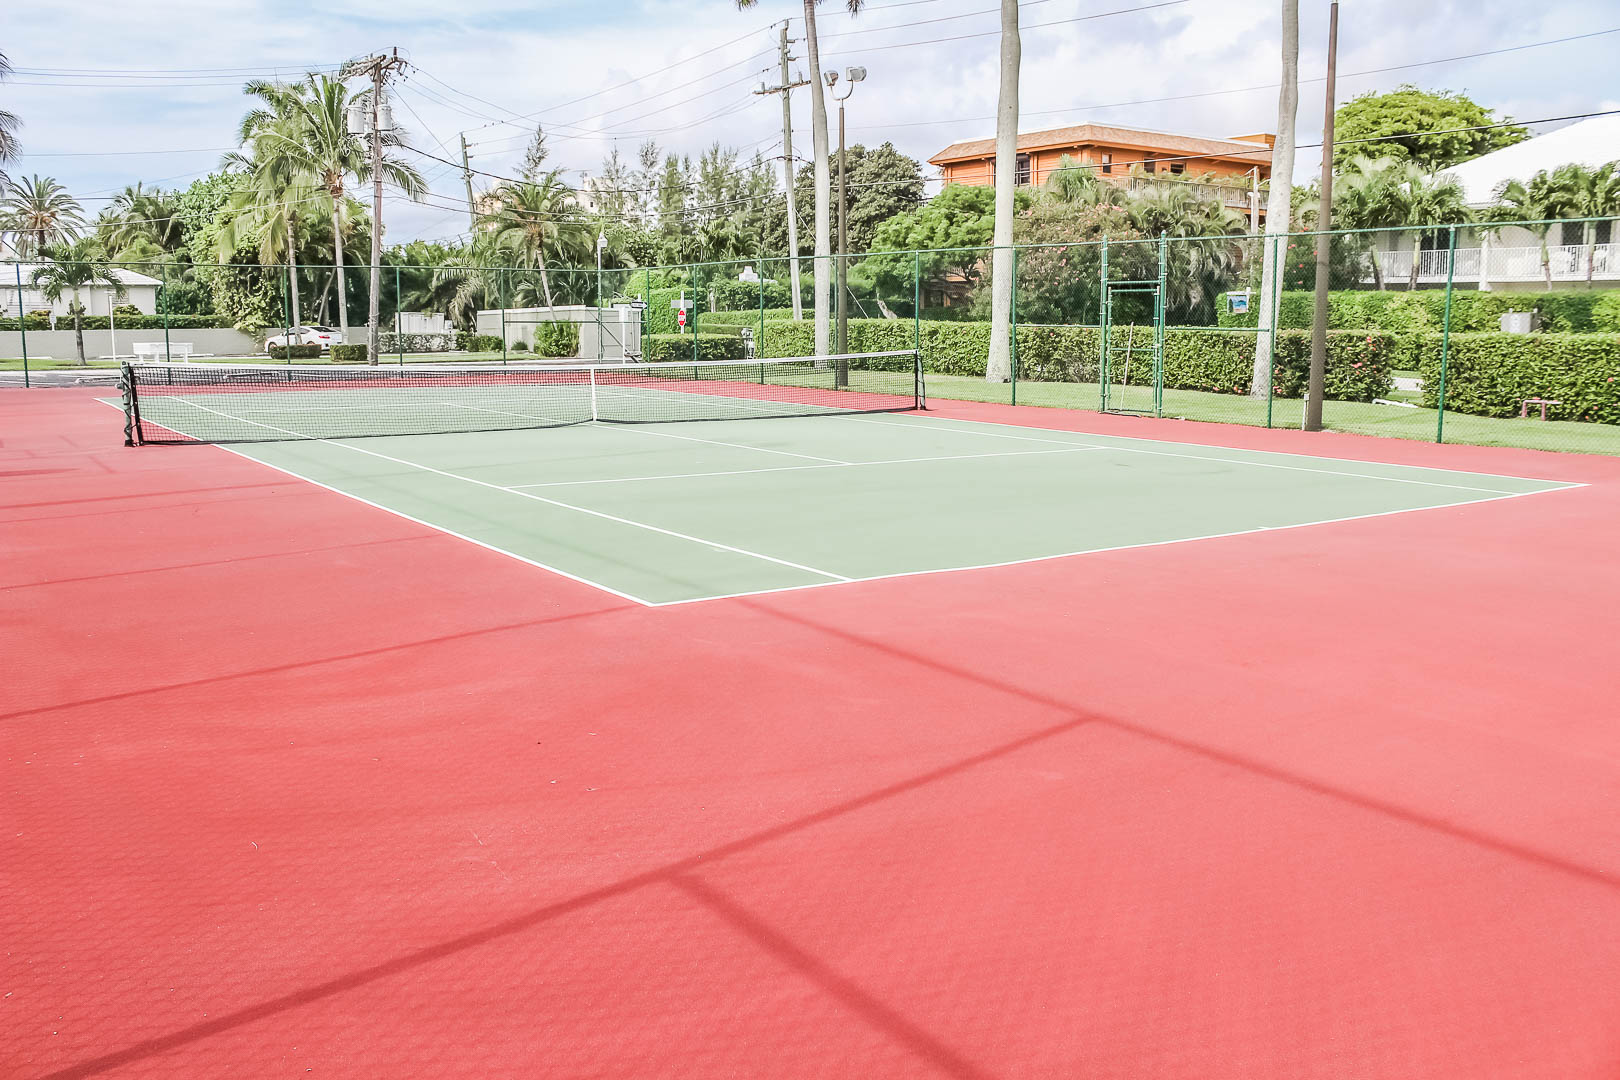 An expansive tennis court at VRI's Berkshire by the Sea in Florida.